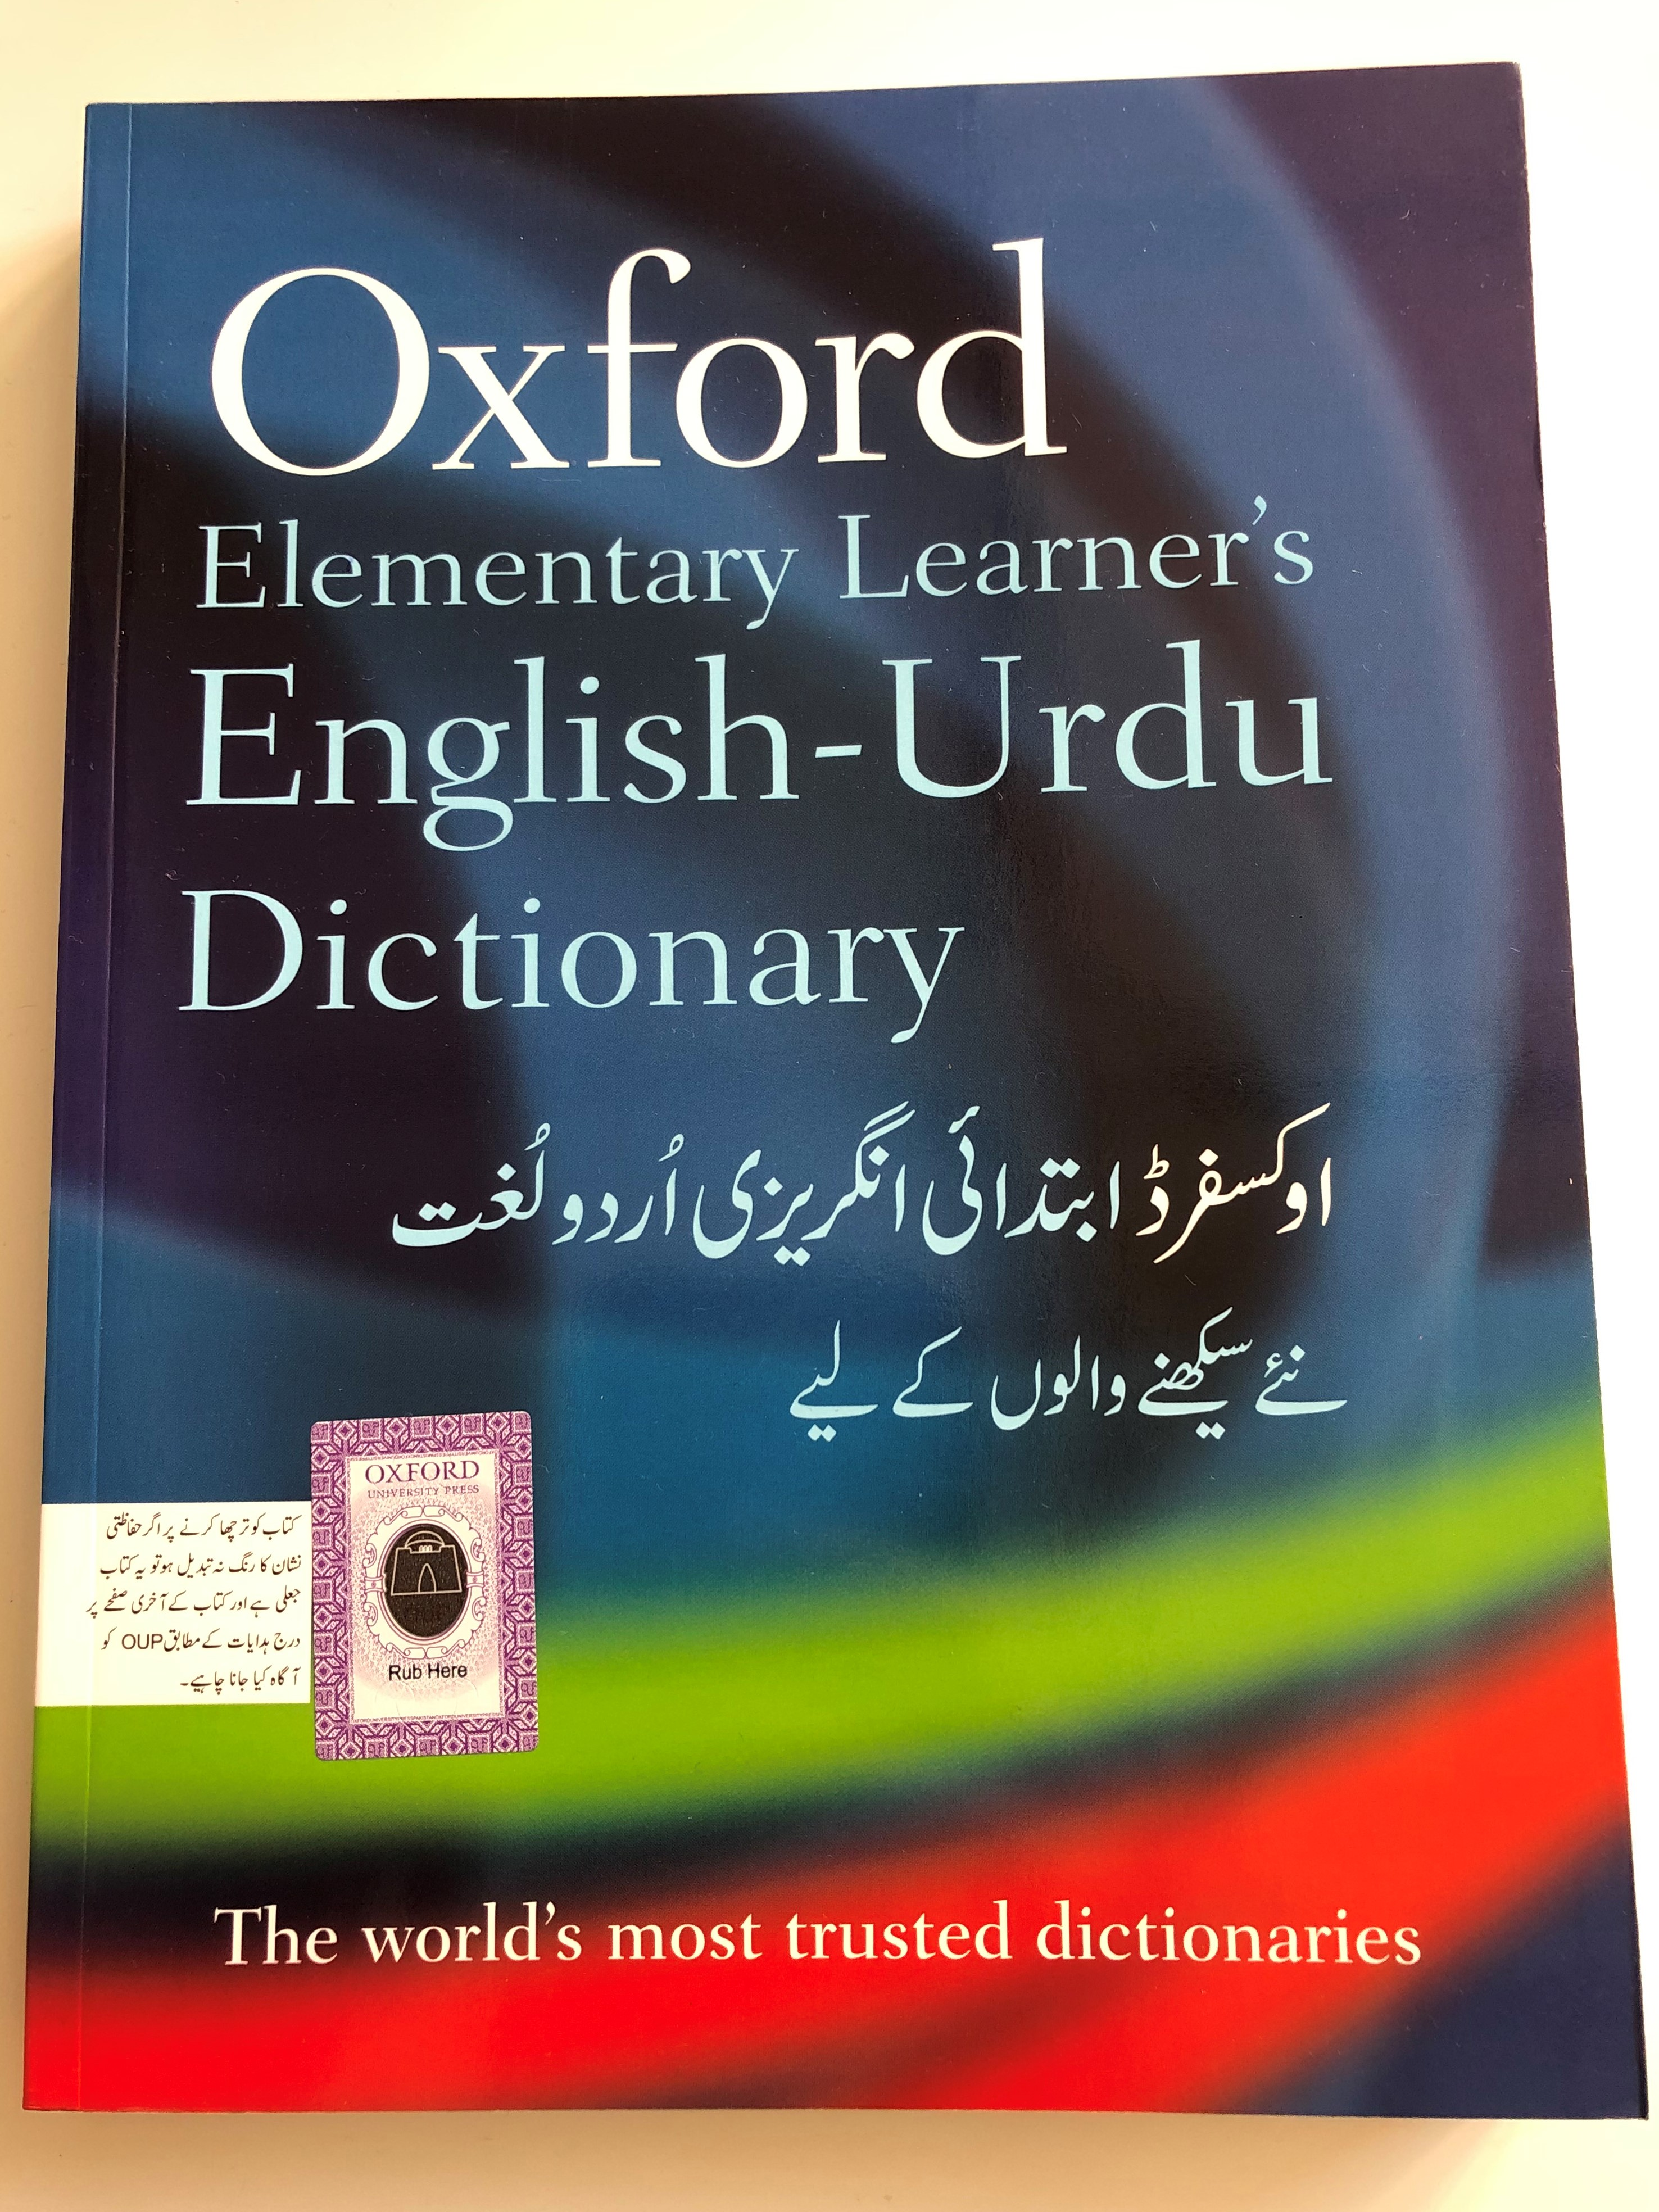 oxford-elementary-learner-s-english-urdu-dictionary-the-world-s-most-trusted-dictionaries-1-.jpg